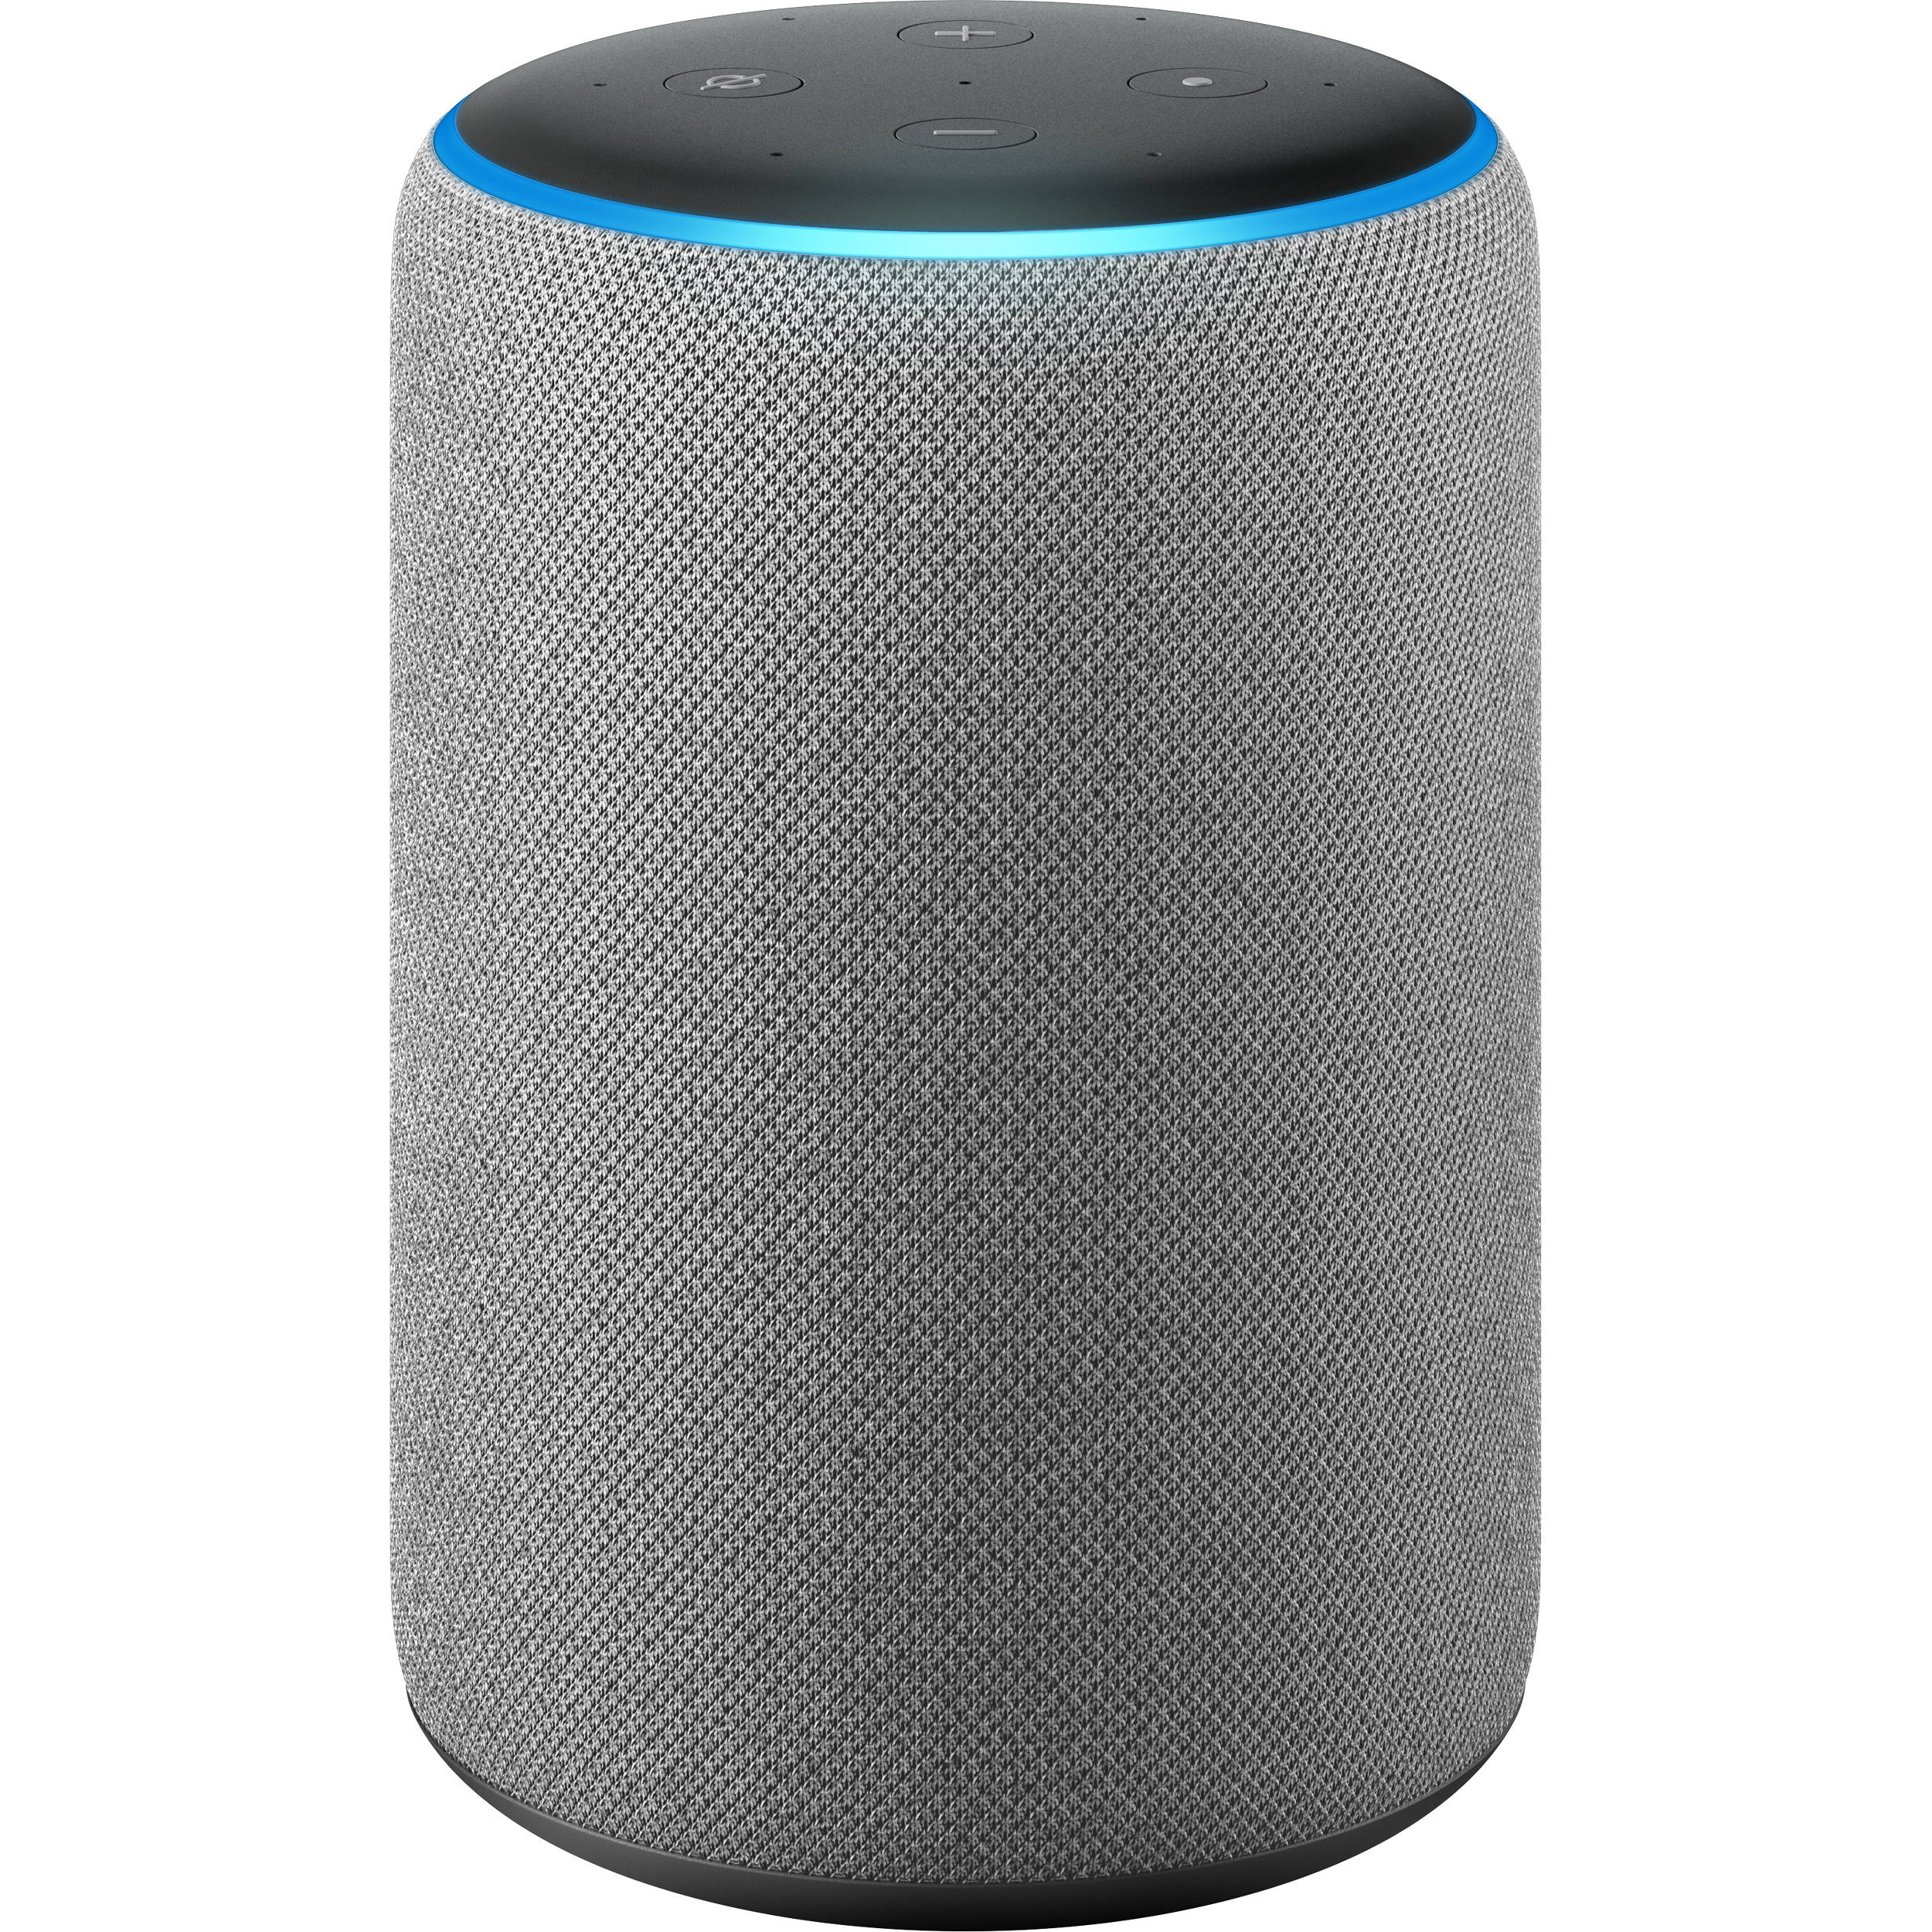 Amazon Echo Plus (2nd Generation, Heather Gray) B07CT3W44K B&H